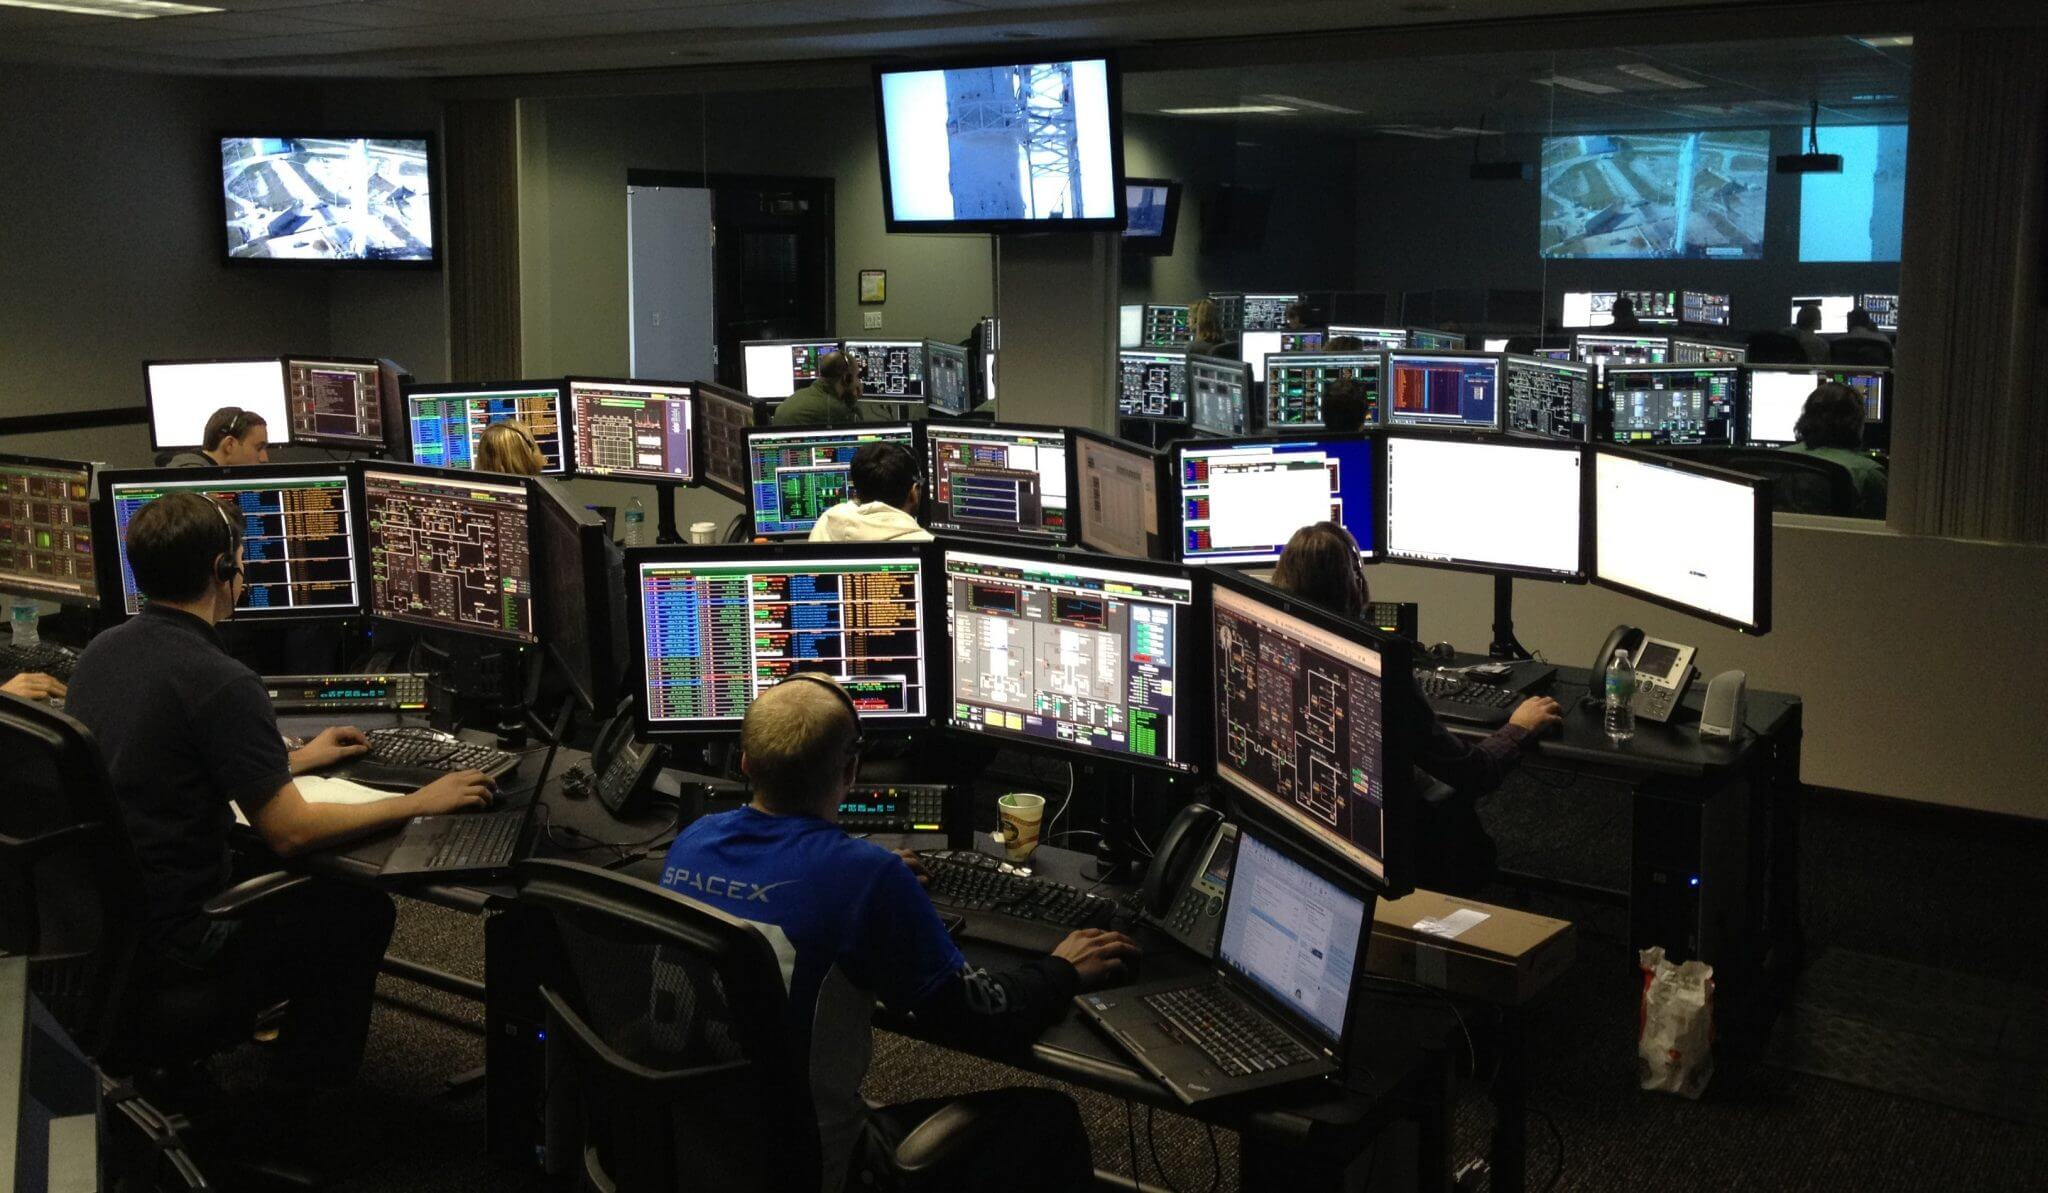 Dark room of computer screens. Looks like a hub for security or IT.